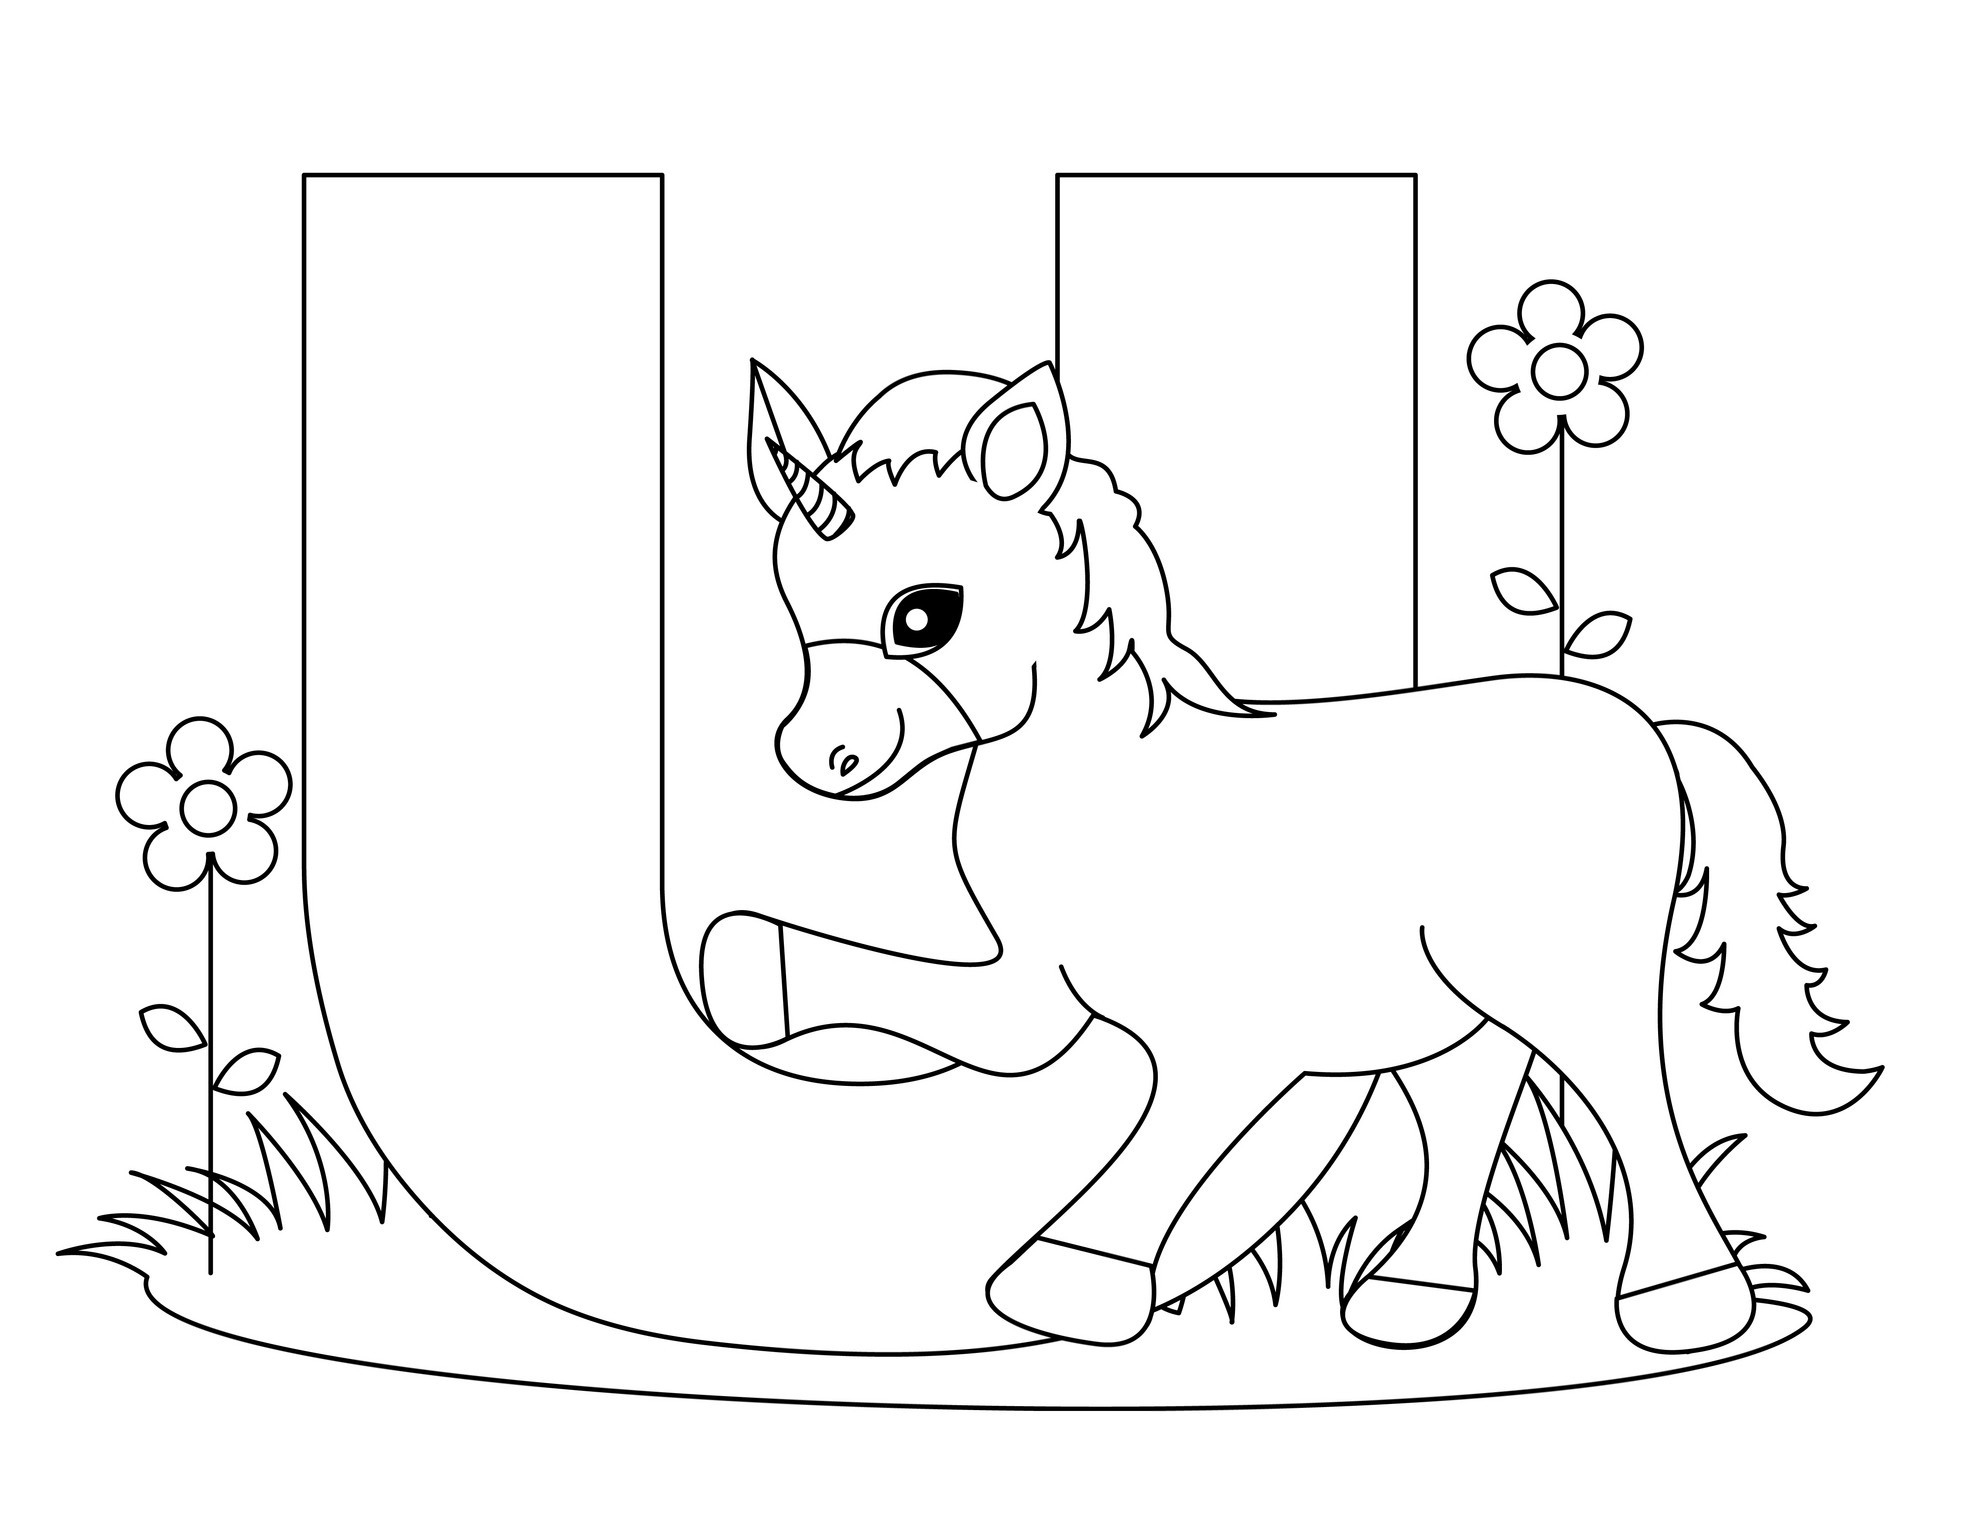 Free Printable Alphabet Coloring Pages For Kids Best Alphabet Coloring Pages Free Printable